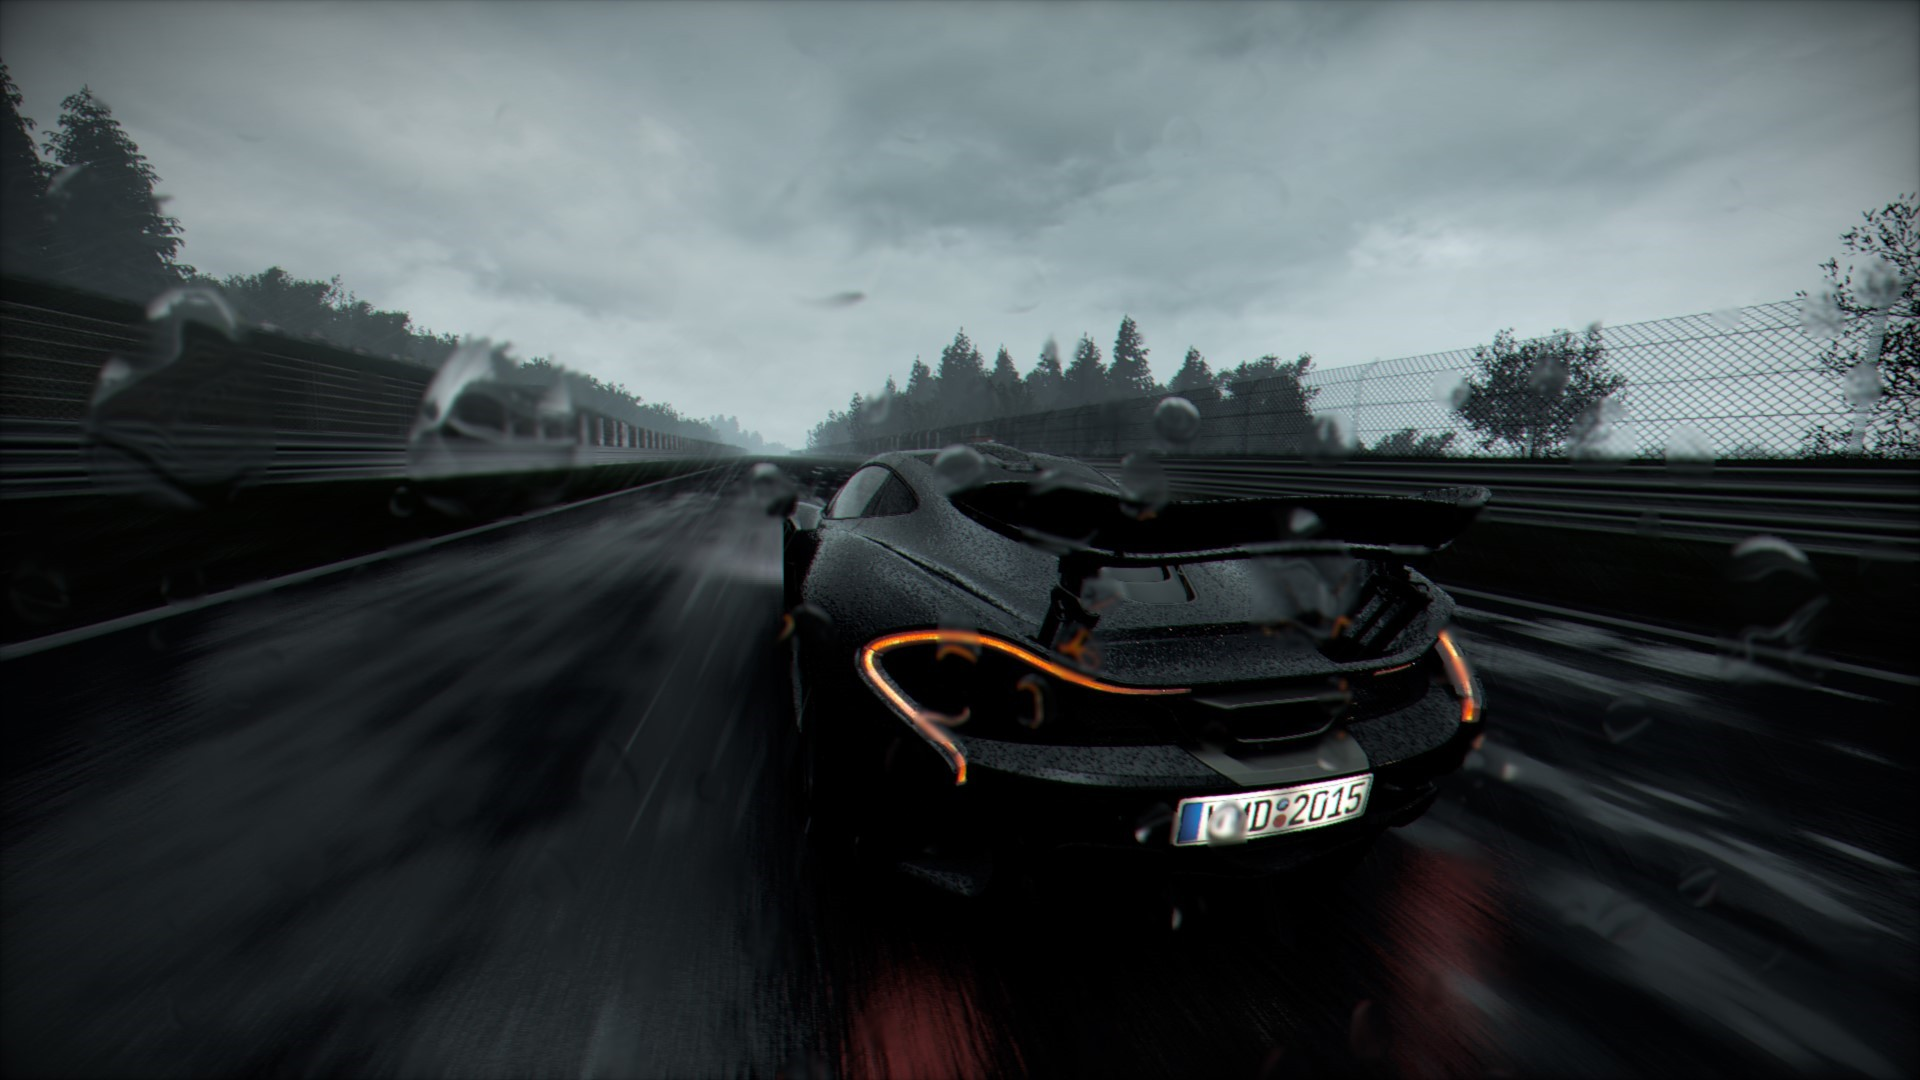 Mclaren P1 Gtr Logo >> Driveclub Video Game, HD Games, 4k Wallpapers, Images, Backgrounds, Photos and Pictures